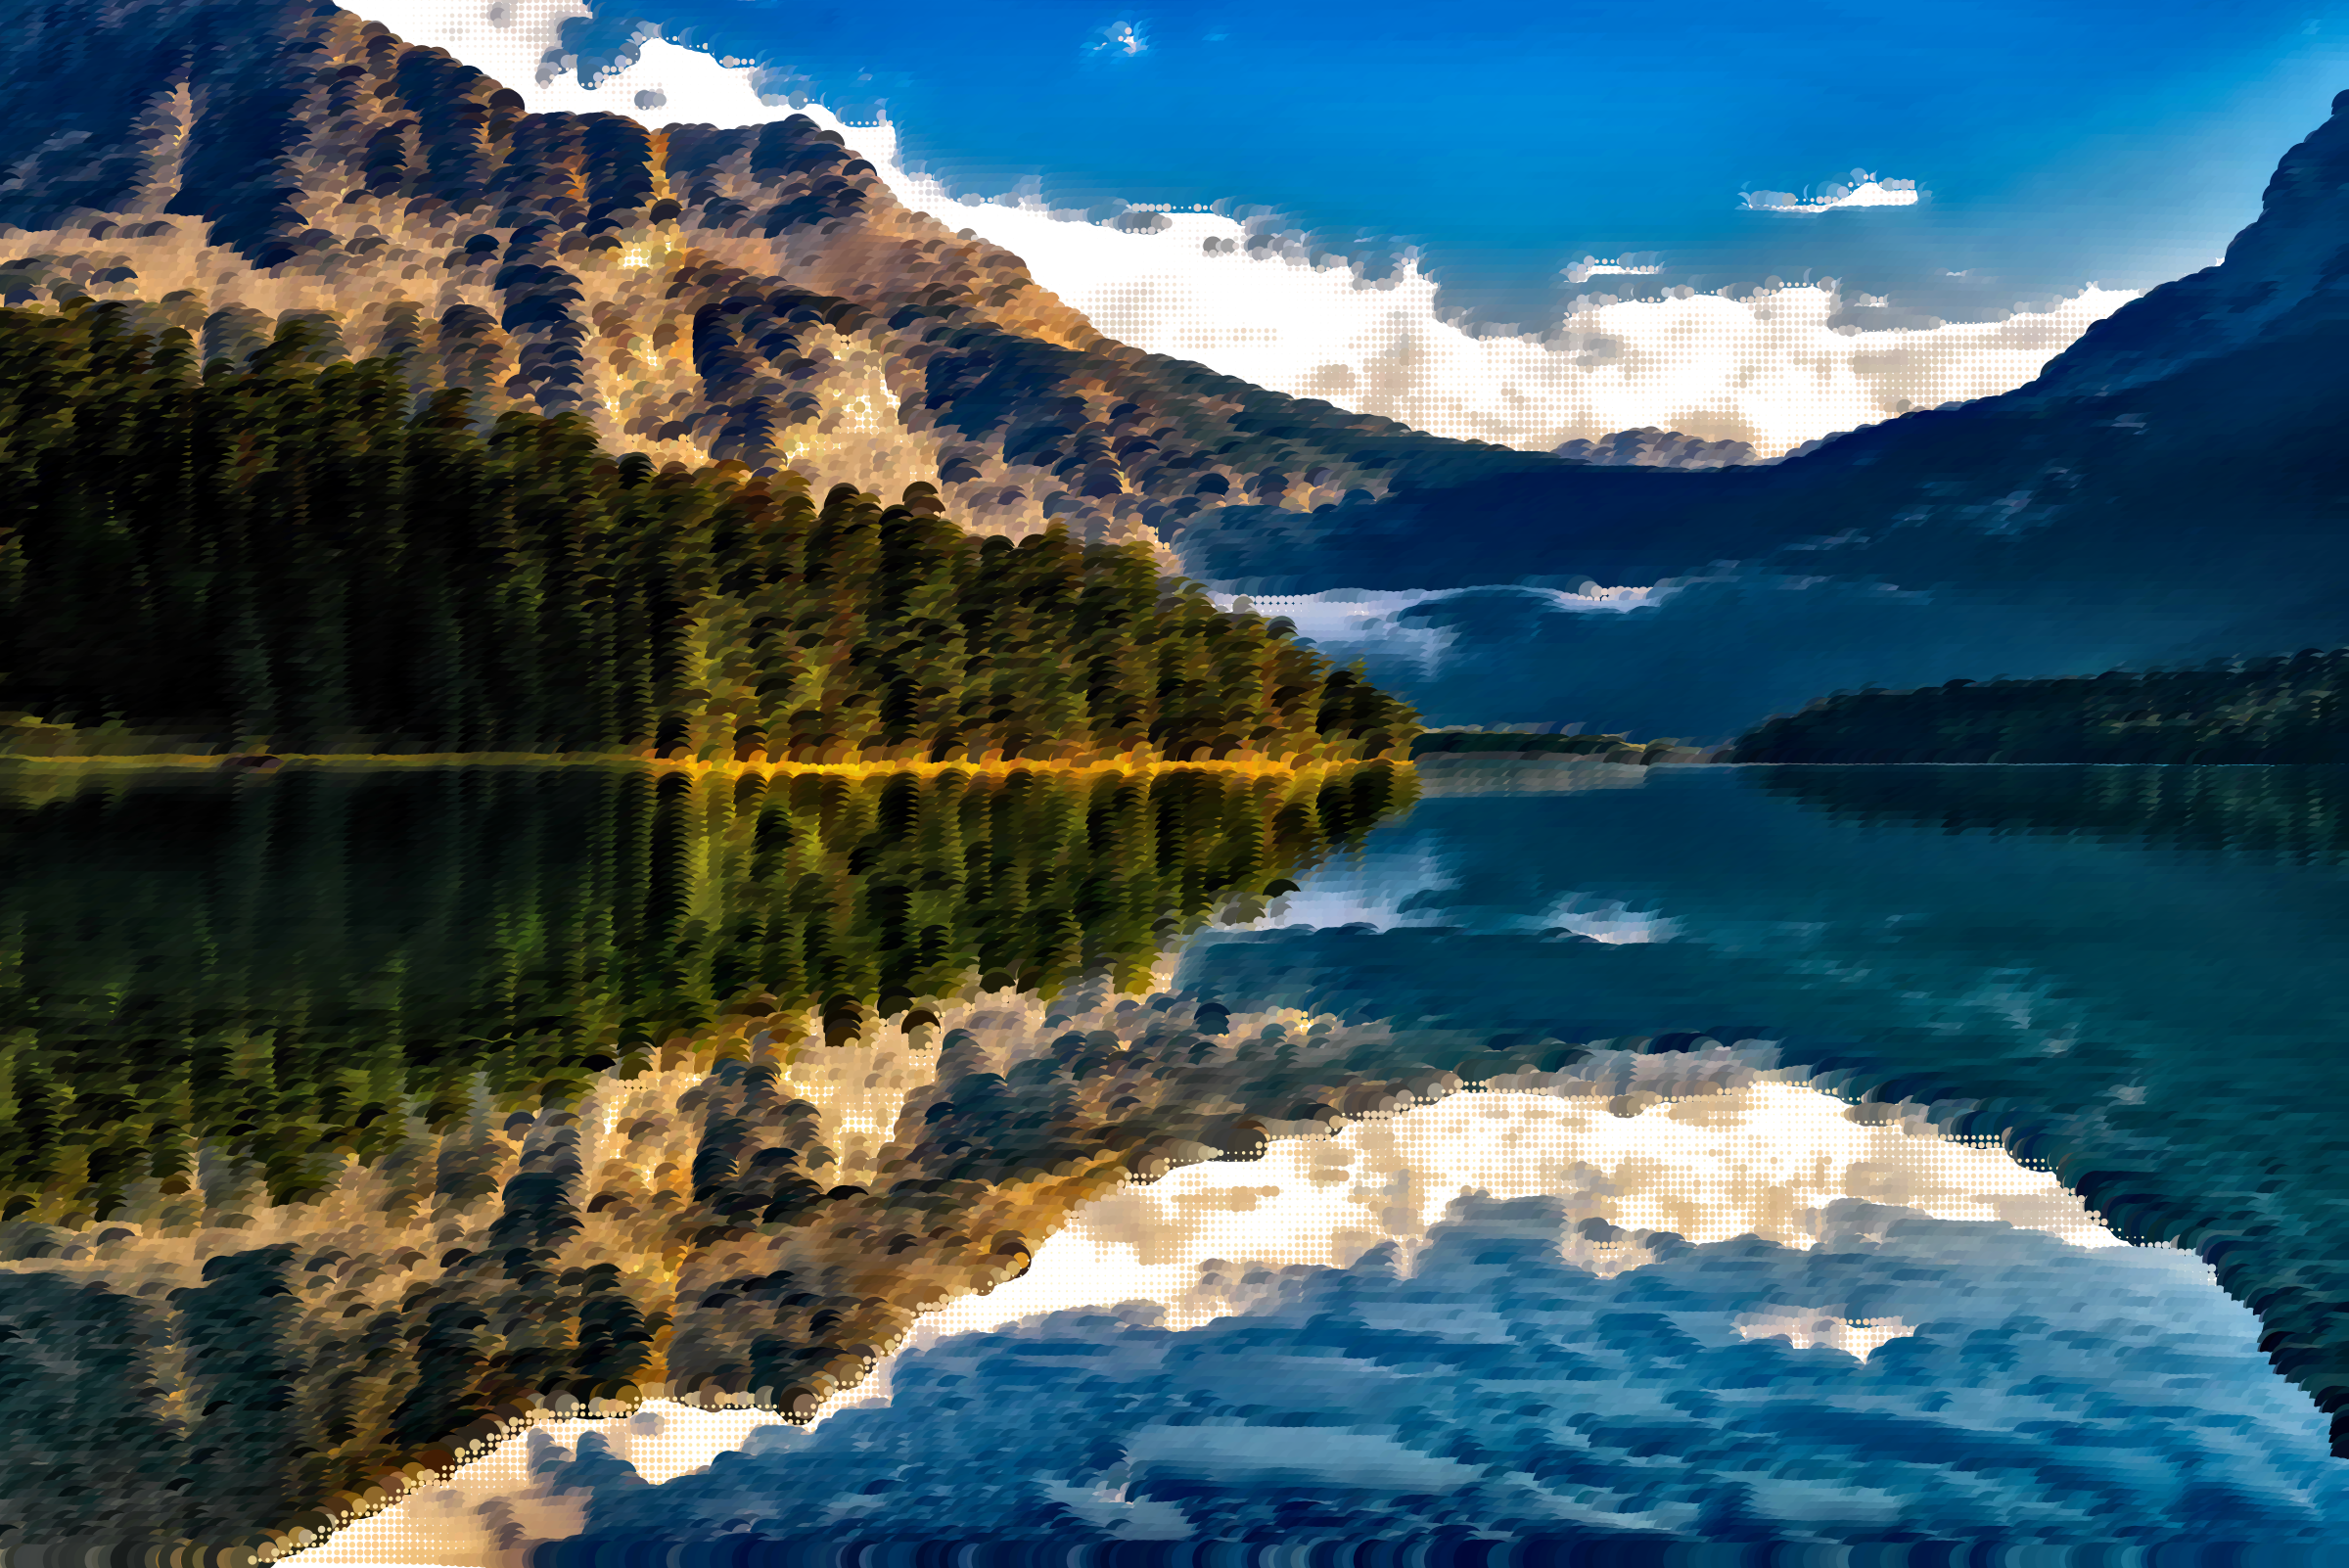 Surreal Canadian Lake by GDJ